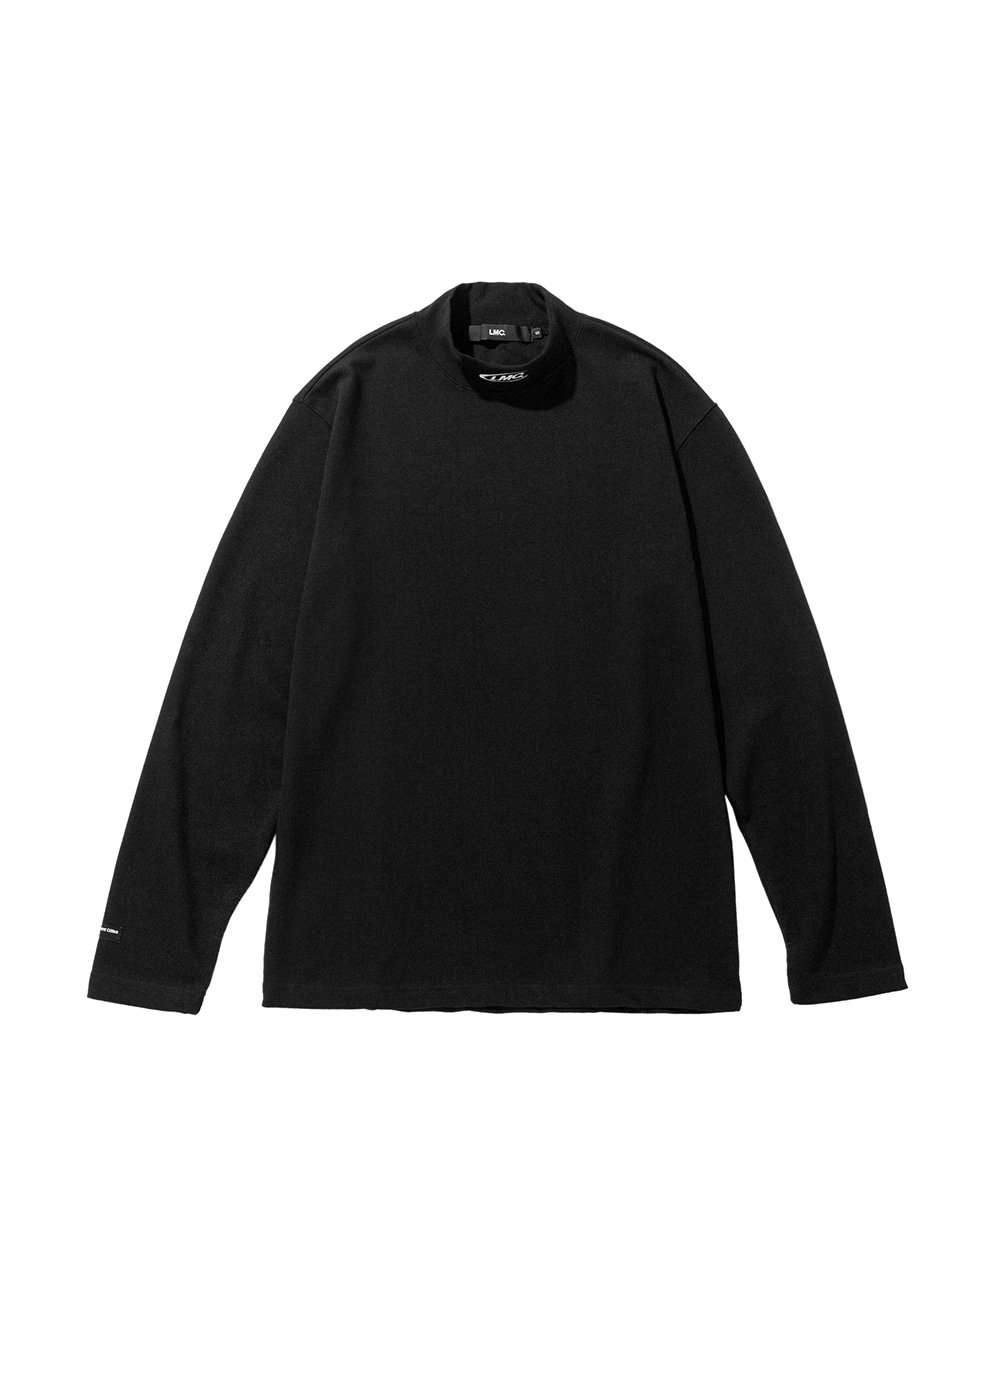 LMC MOCK NECK LONG SLV TEE black